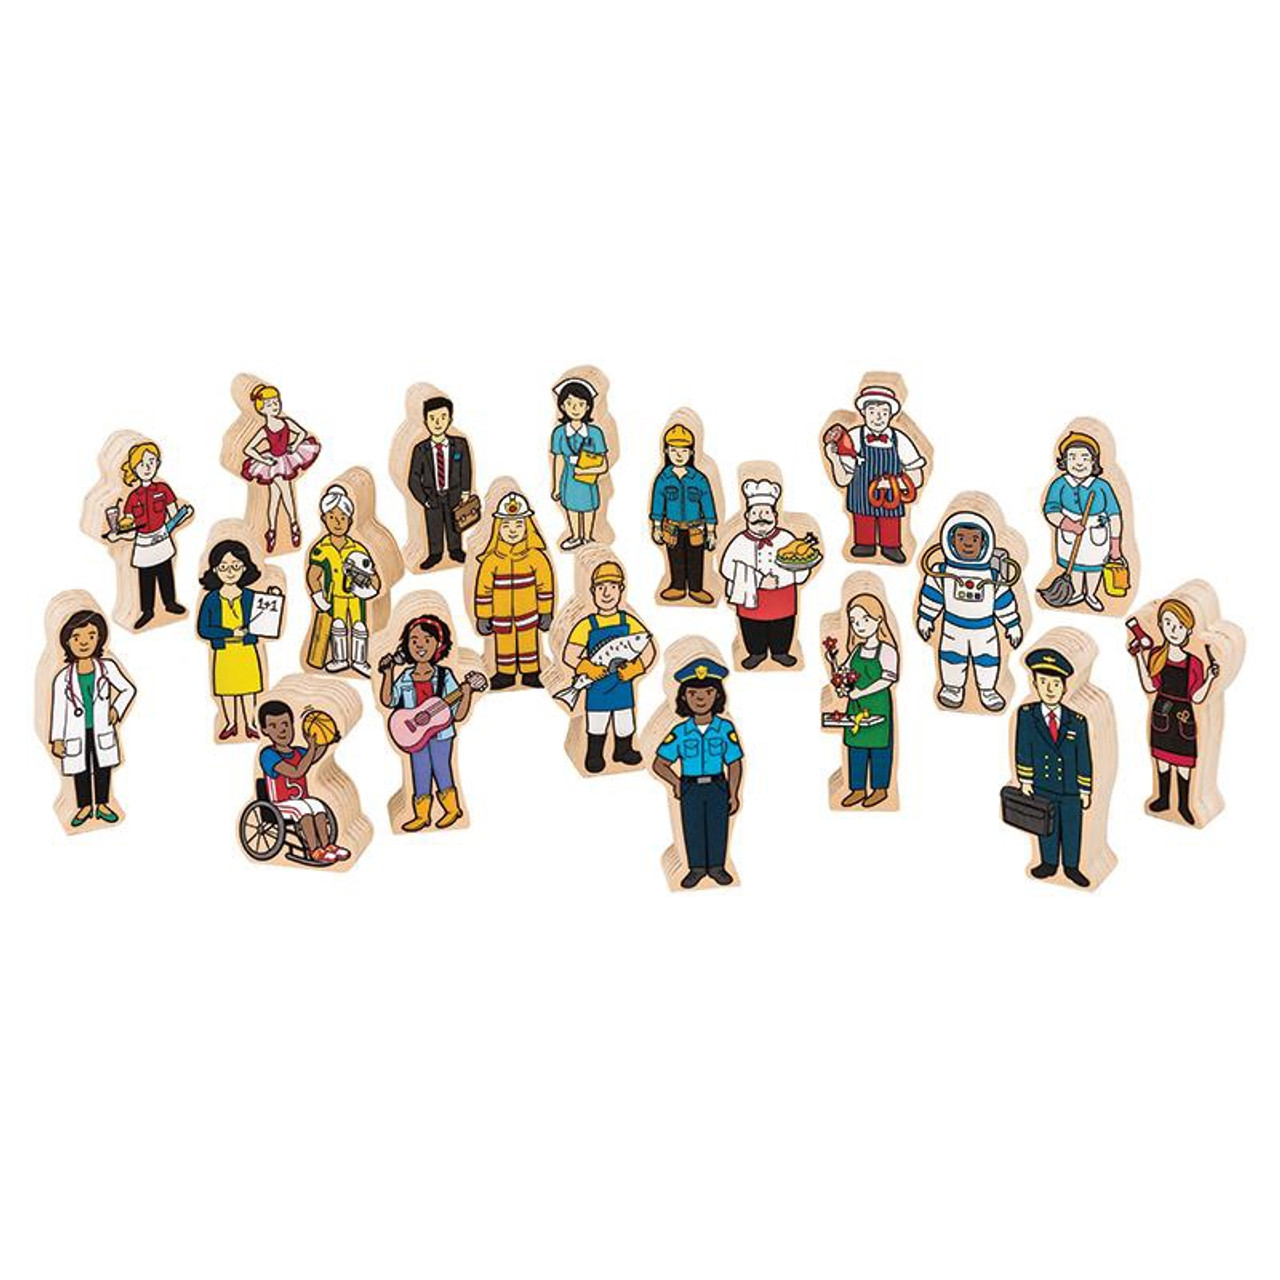 Fun Factory Wooden Multicultural People 20pcs at Baby Barn Discounts Fun Factory wooden people set includes 20 wooden pieces that are shaped to look like different people.